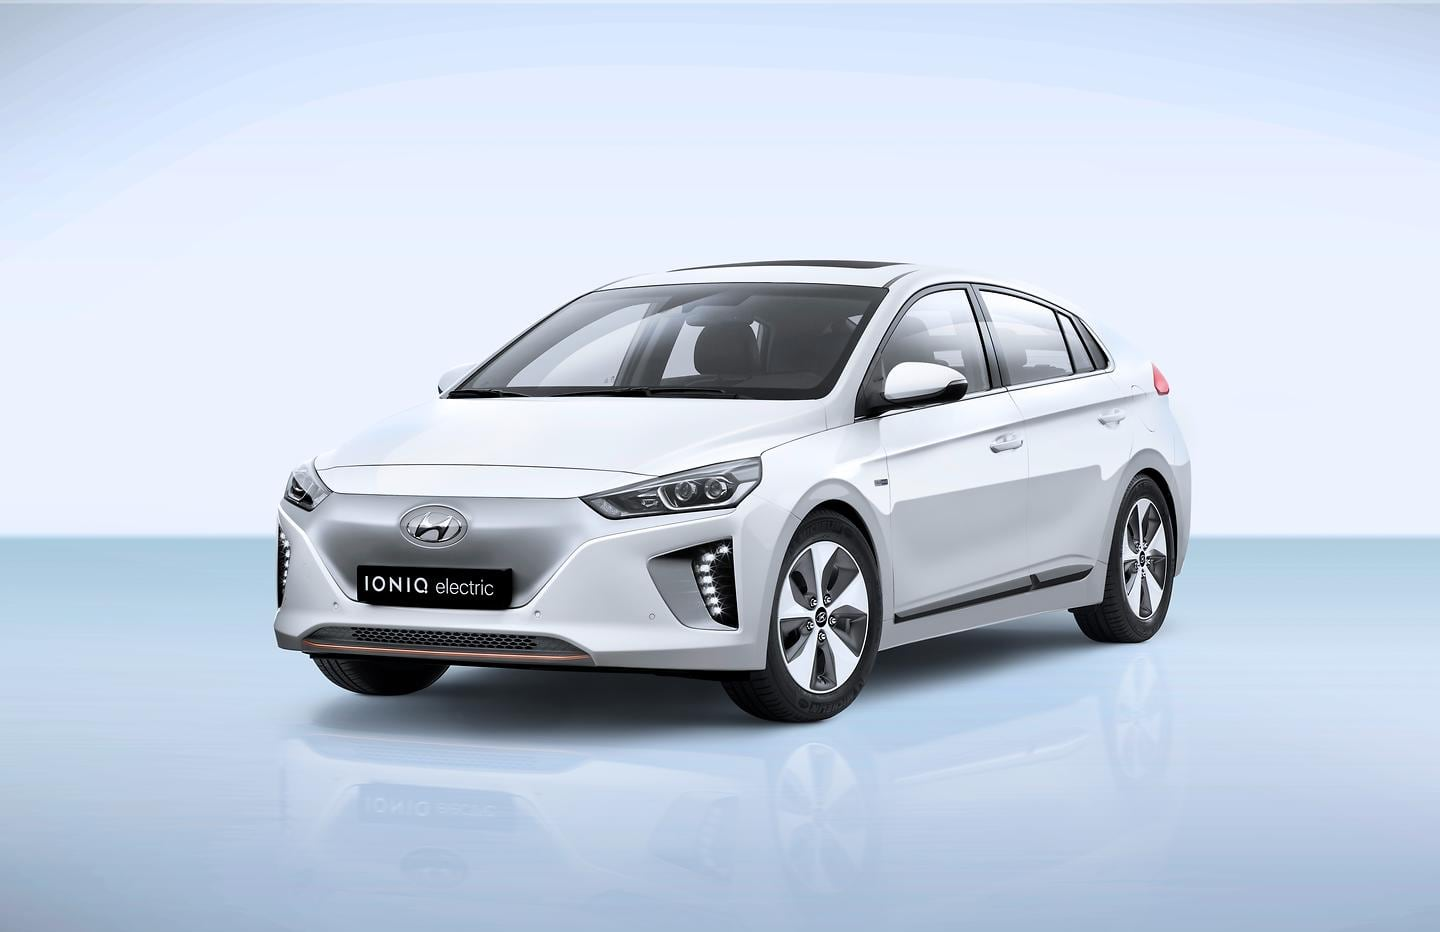 Dedicated to Disrupt - the All-New Hyundai IONIQ Line-Up: Hybrid, Plug-in, Electric